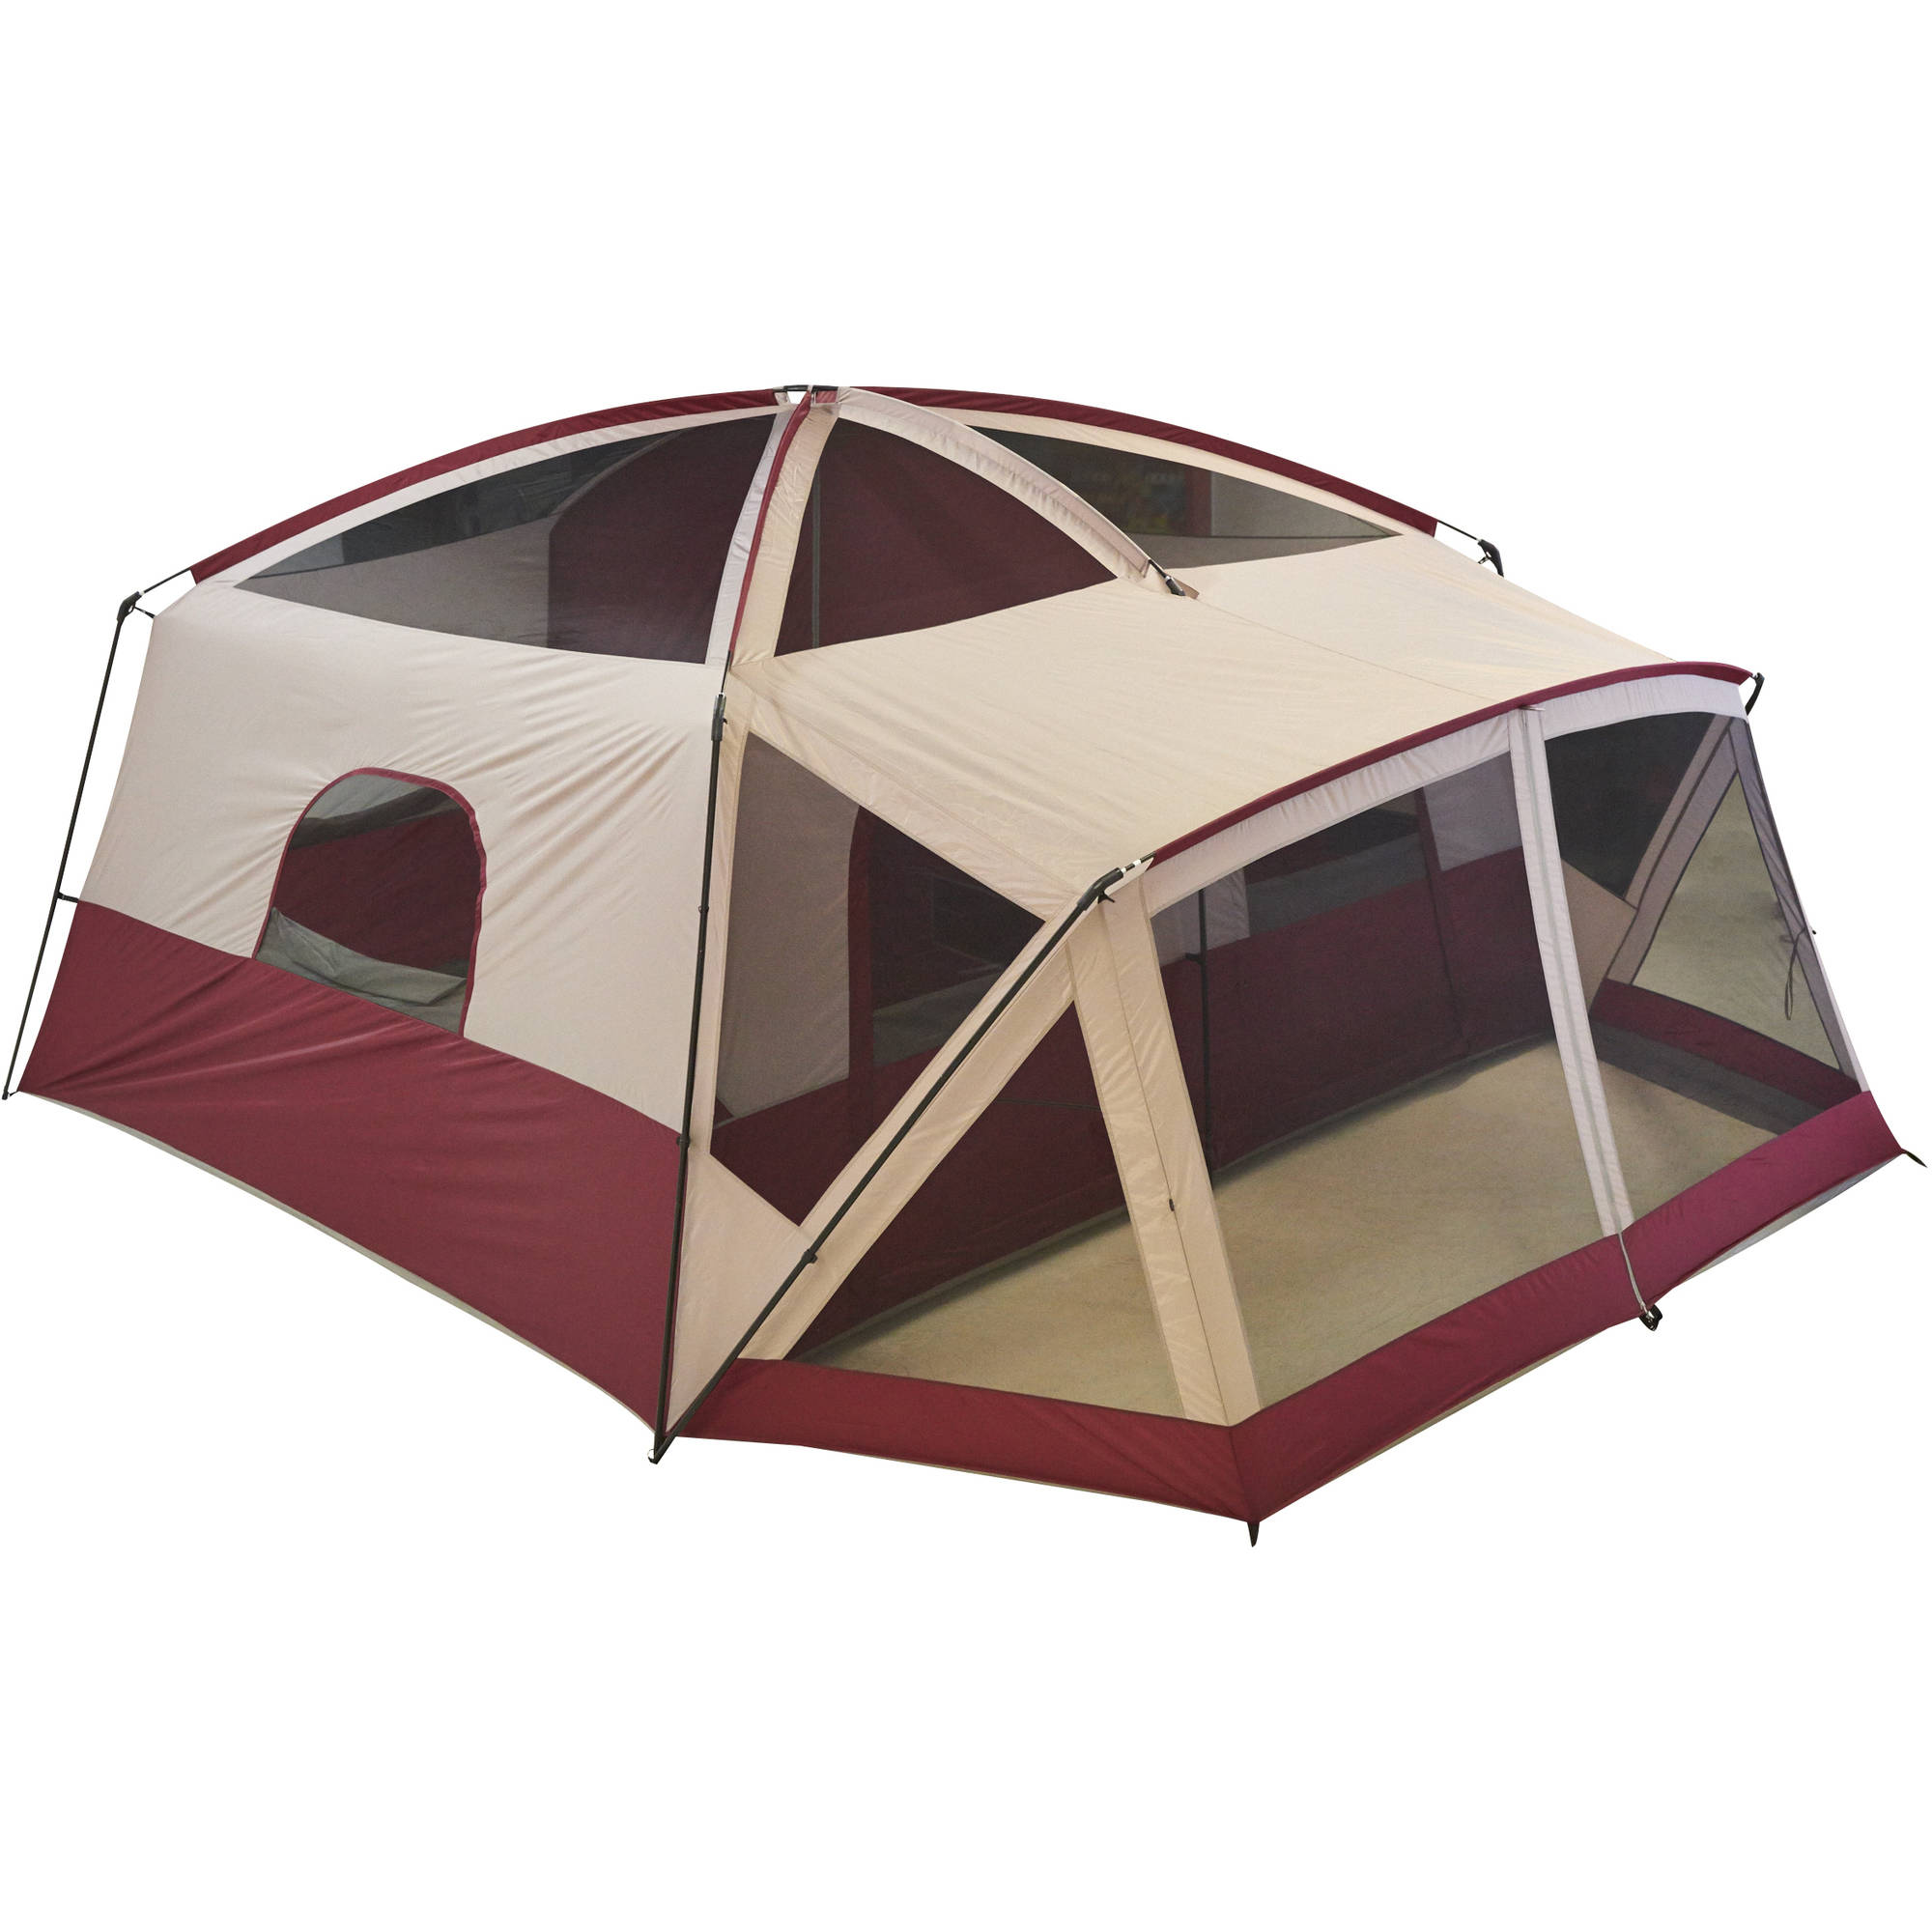 Ozark Trail 12-Person Cabin Tent with Screen Porch Image 2 of 5  sc 1 st  Walmart : ozark trail 12 person cabin tent - memphite.com